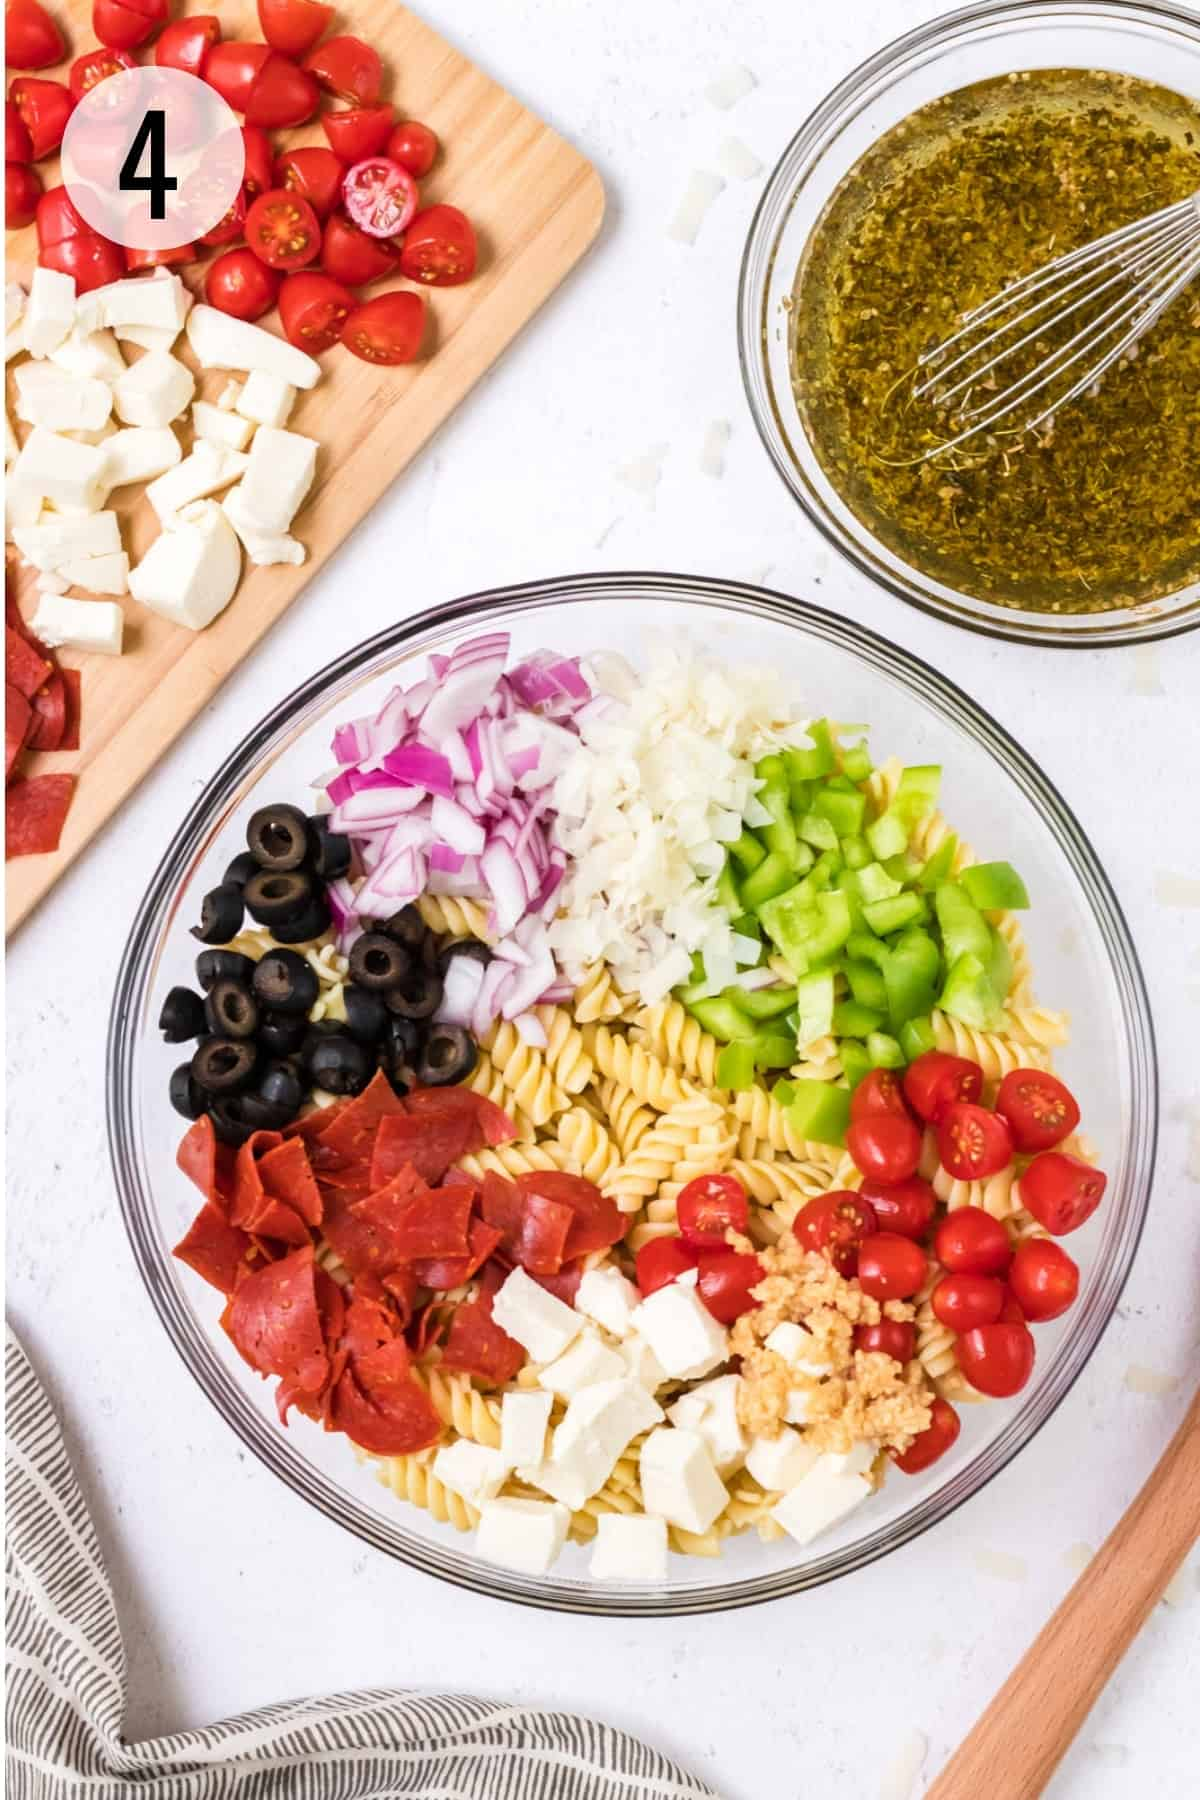 Glass bowl of ingredients for pepperoni pasta salad including fresh vegetables and smaller bowl of oil and vinegar herb dressing with cutting board of tomatoes and fresh mozzarella in upper background.